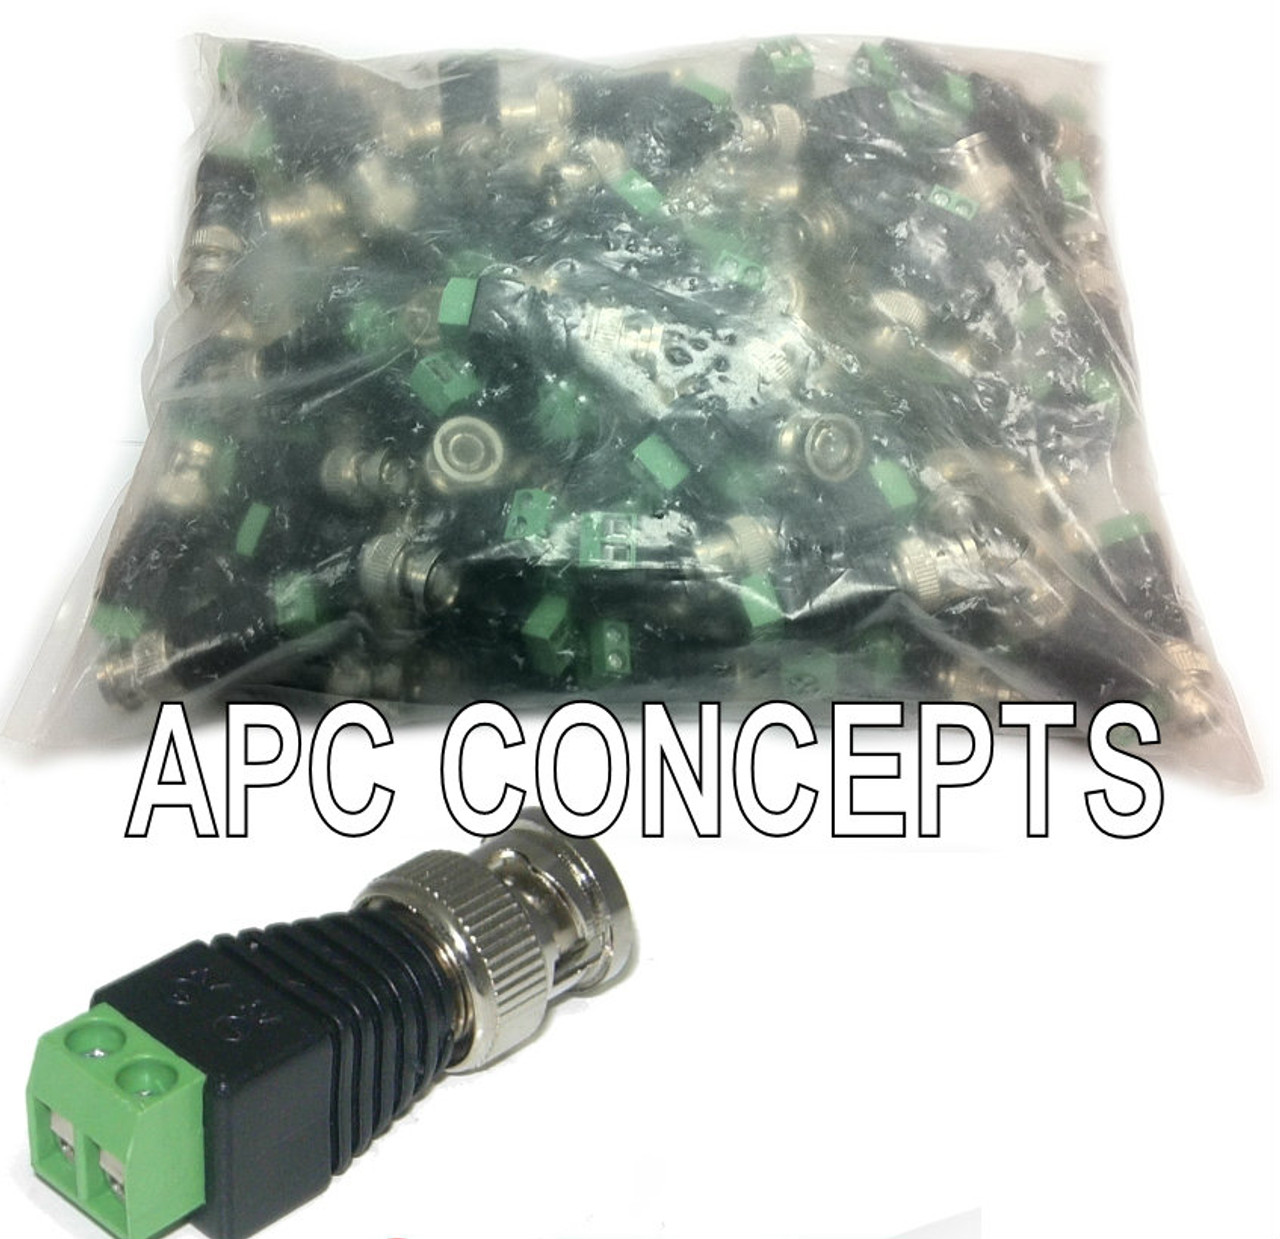 100 Pack Quick RG59 BNC Connectors - Terminal Connection